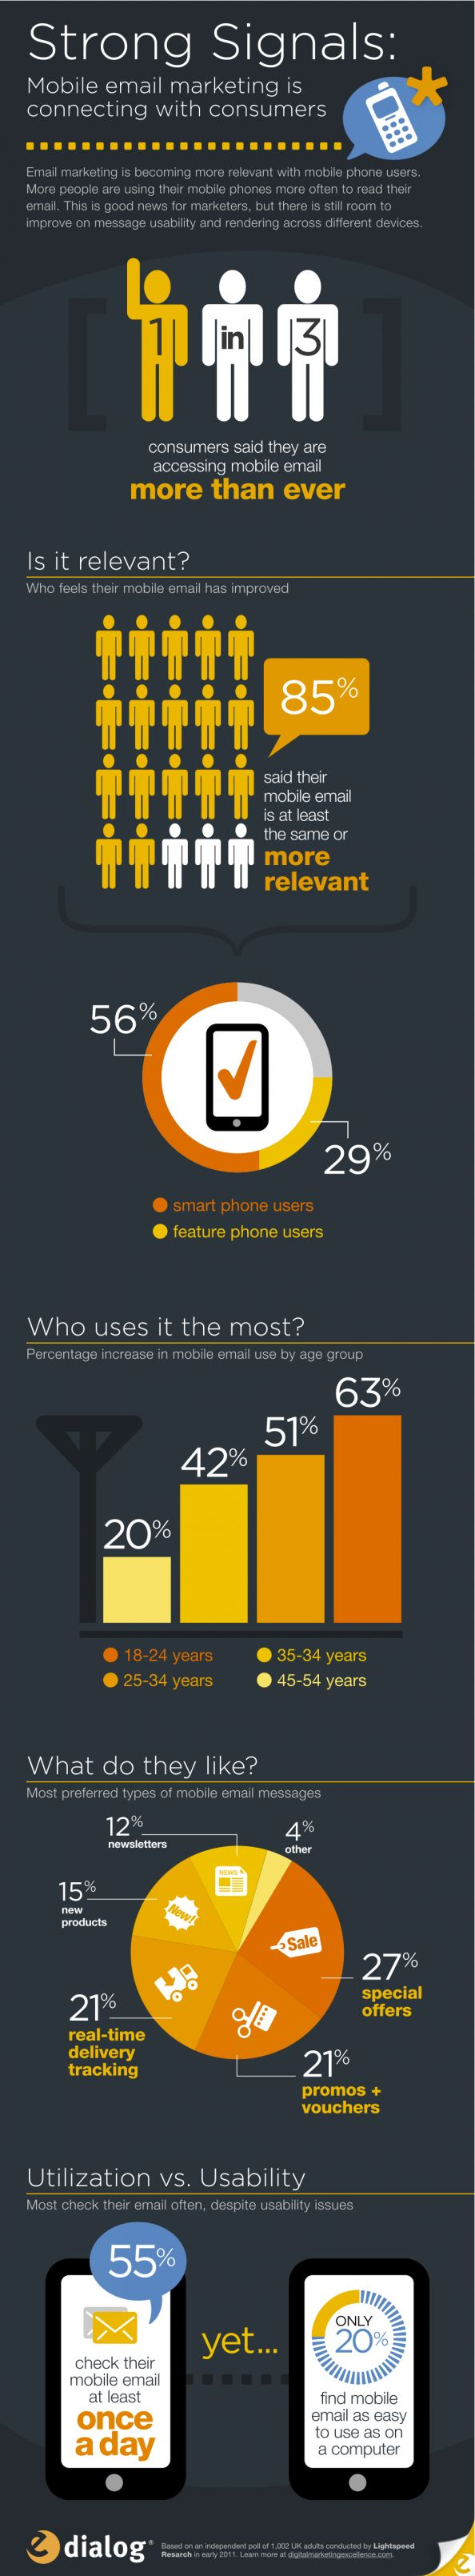 The Rise of Mobile Email Marketing